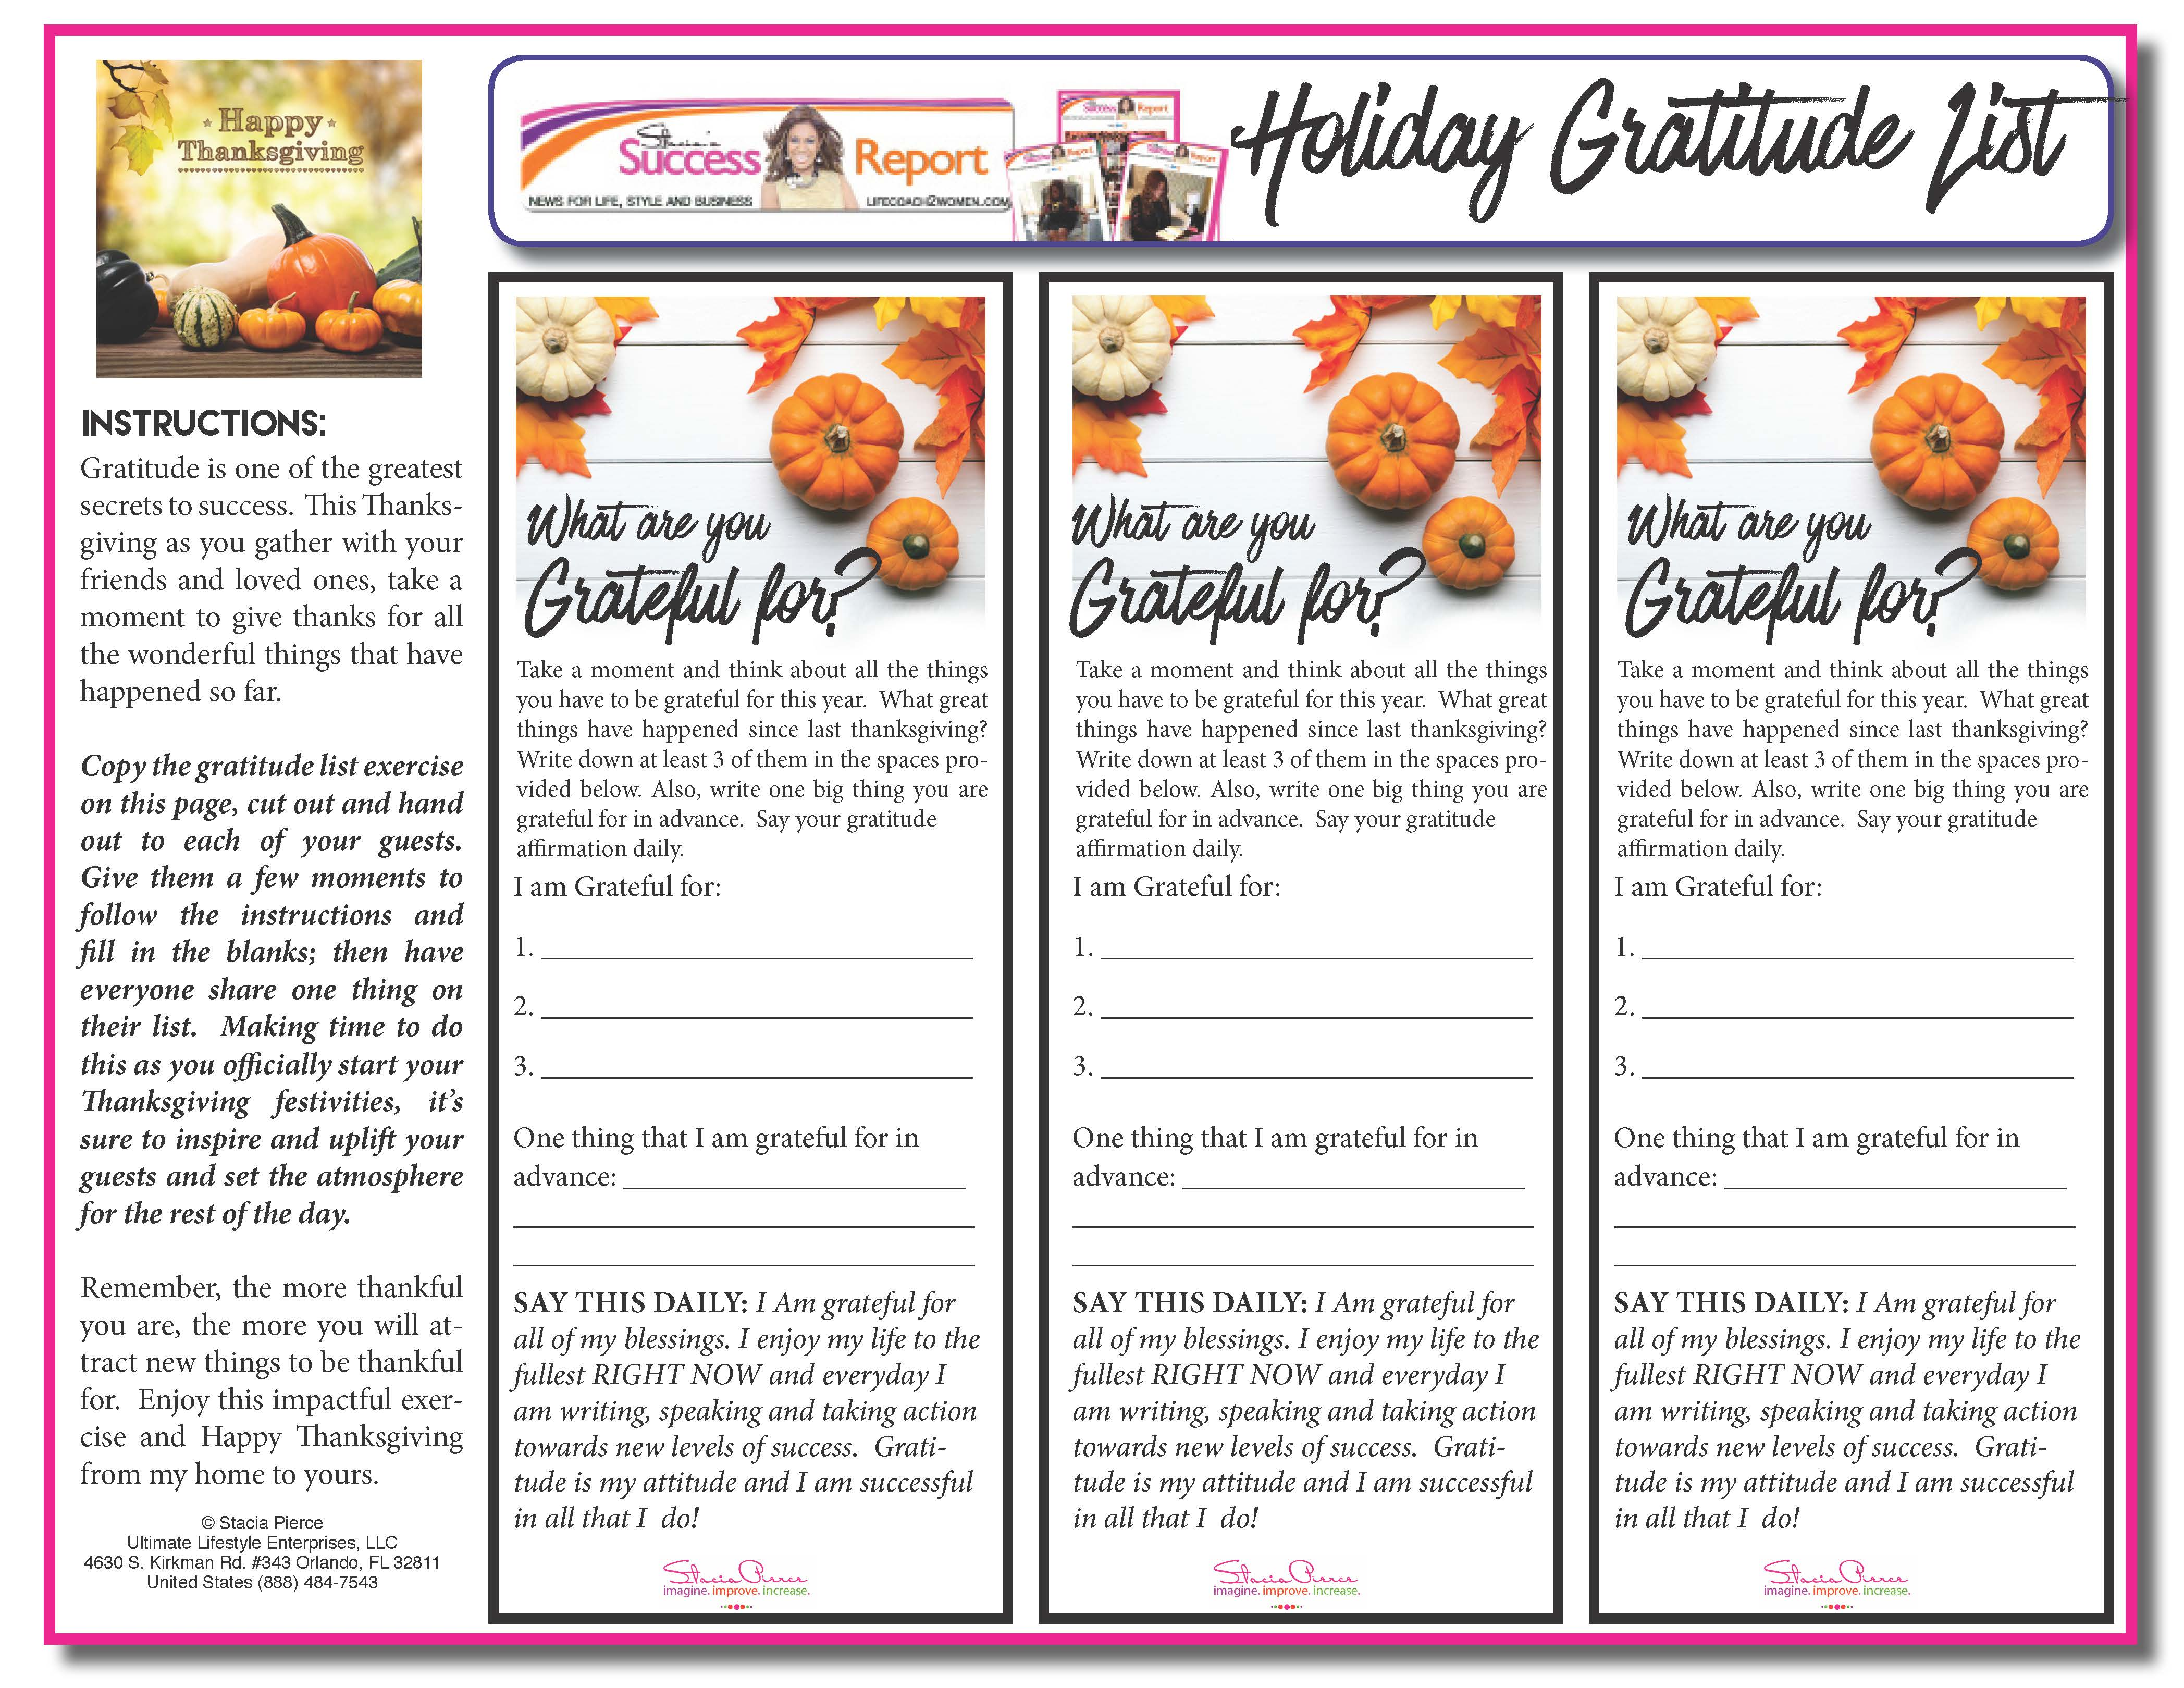 grateful-list-thanksgiving-bizblog-2016